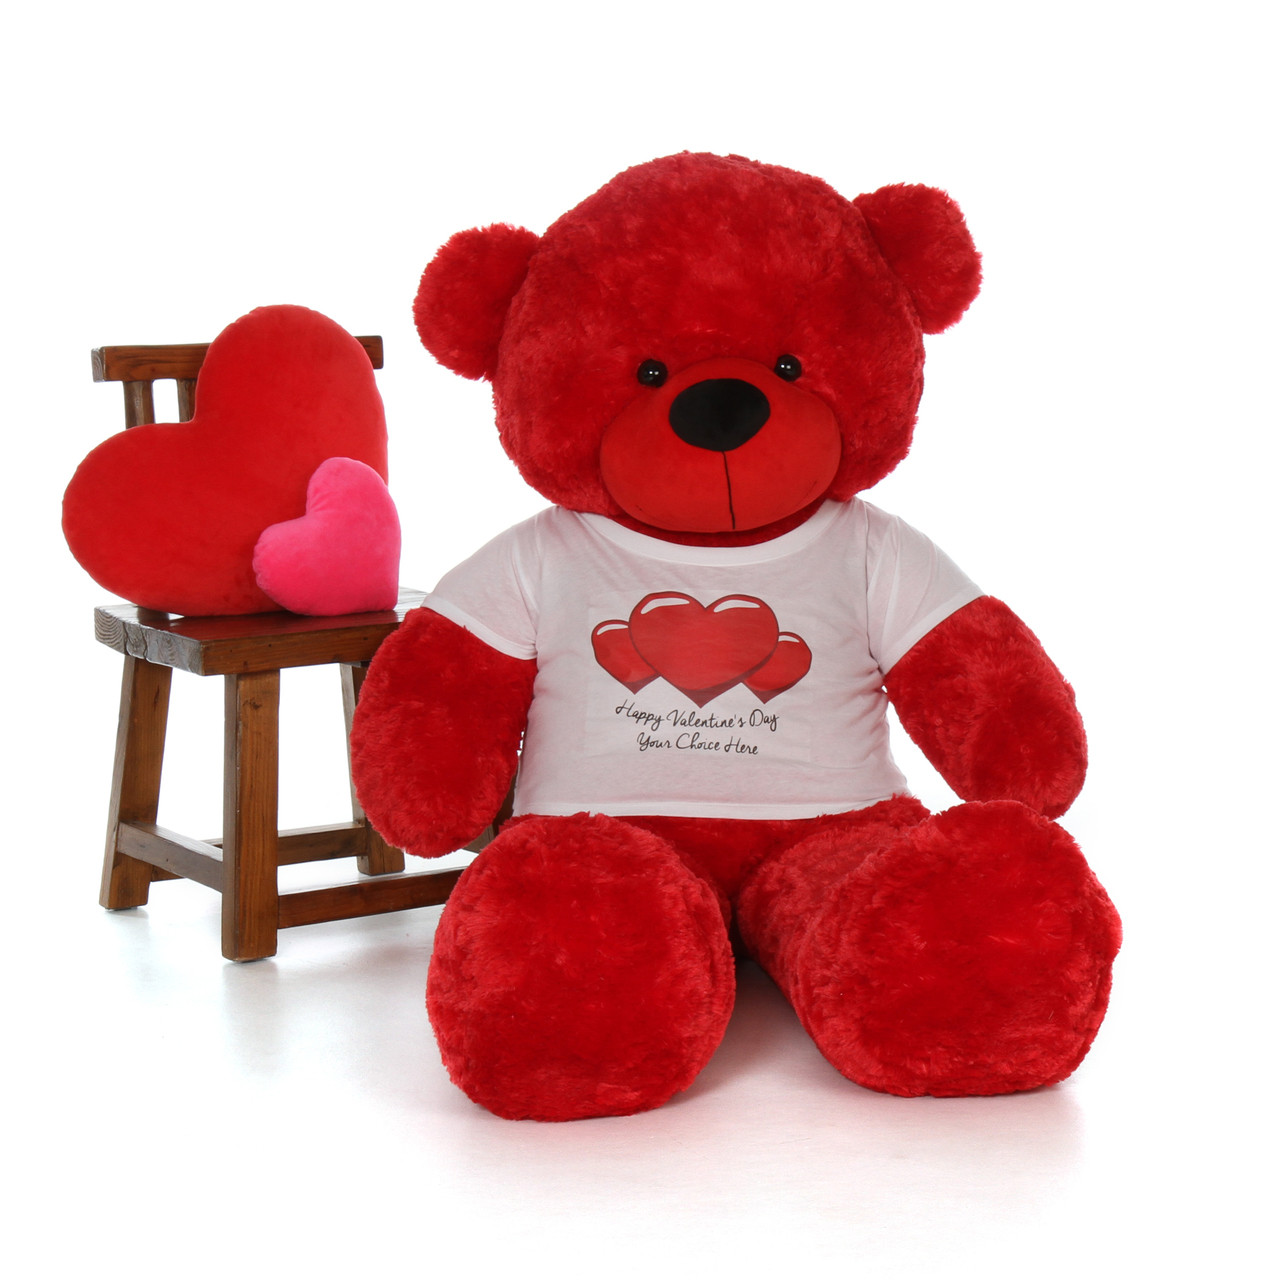 5ft Bitsy Cuddles Red Giant Teddy in Happy Valentine's Day Red Heart Shirt